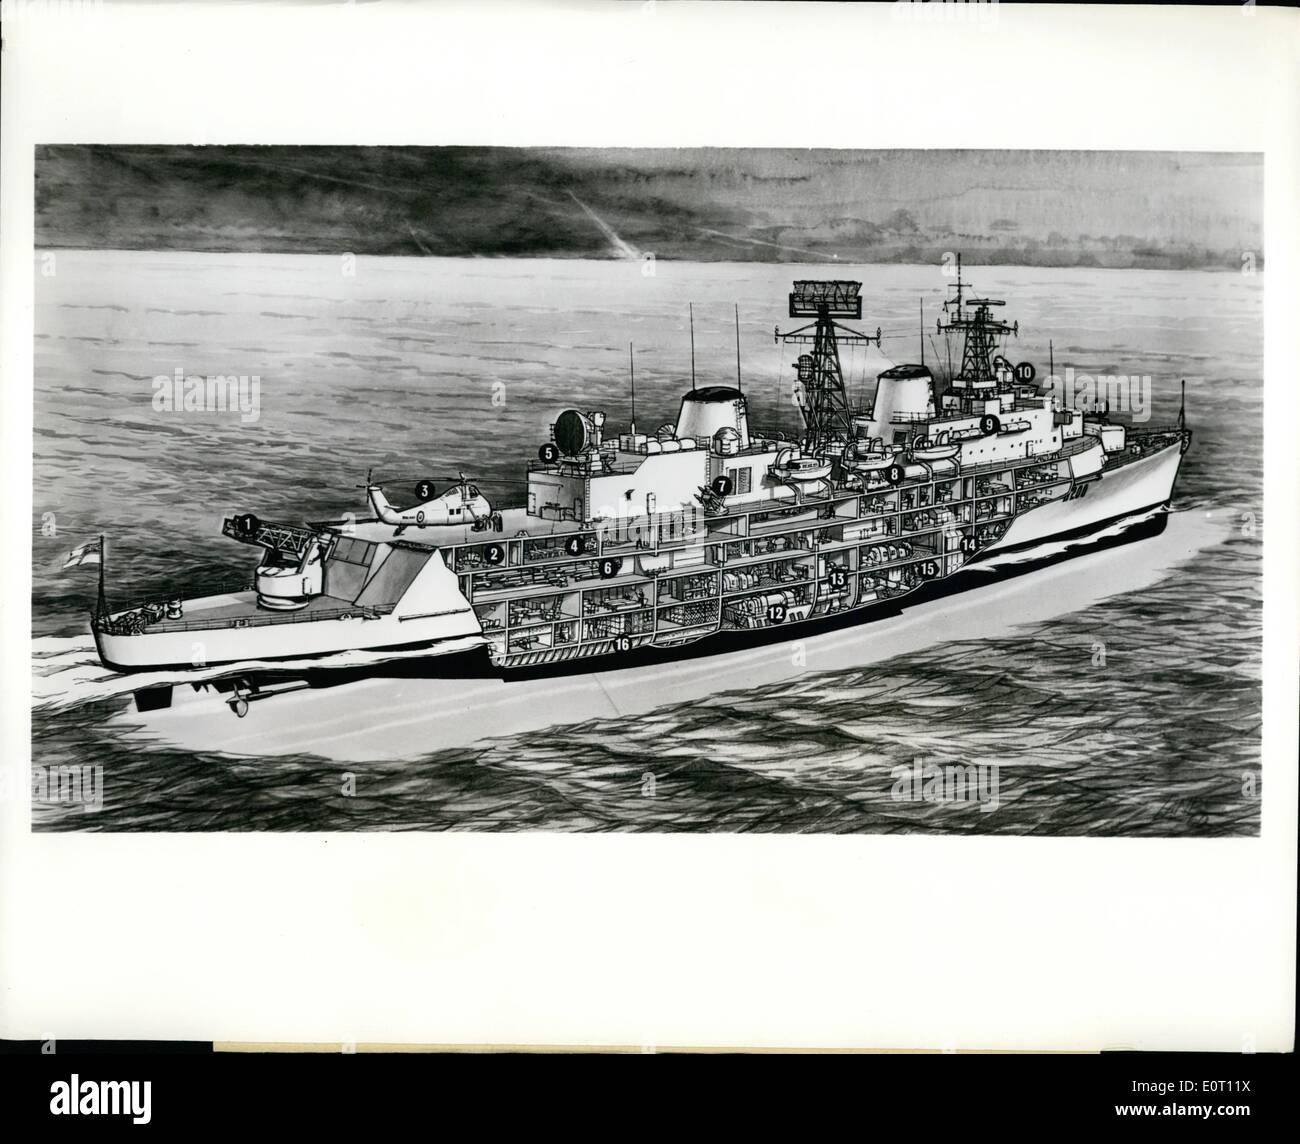 Jun. 06, 1960 - A cutaway drawing of H.M.S Devonshire, the first guided missile destroyer of Britain's Royal Navy, launched this month: (1) Seaslug Launcher, (2) Chief Petty officer' Mess, (3) Wessex anti-submarine helicopter, (4) crews dining hall, (5) missile-guidance radar, (6) missile stowage, (7) Seacat close range anti-aircraft missile, (8) homing anti-submarine torpedo tubes, (9) inflatable life rafts, (10) enclosed bridge, (11) 4.5 twin gun mountings, (12) gas turbine room, (13) gearing room, (14) boiler room, (15) steam turbine room, and (16) fuel tanks - Stock Image